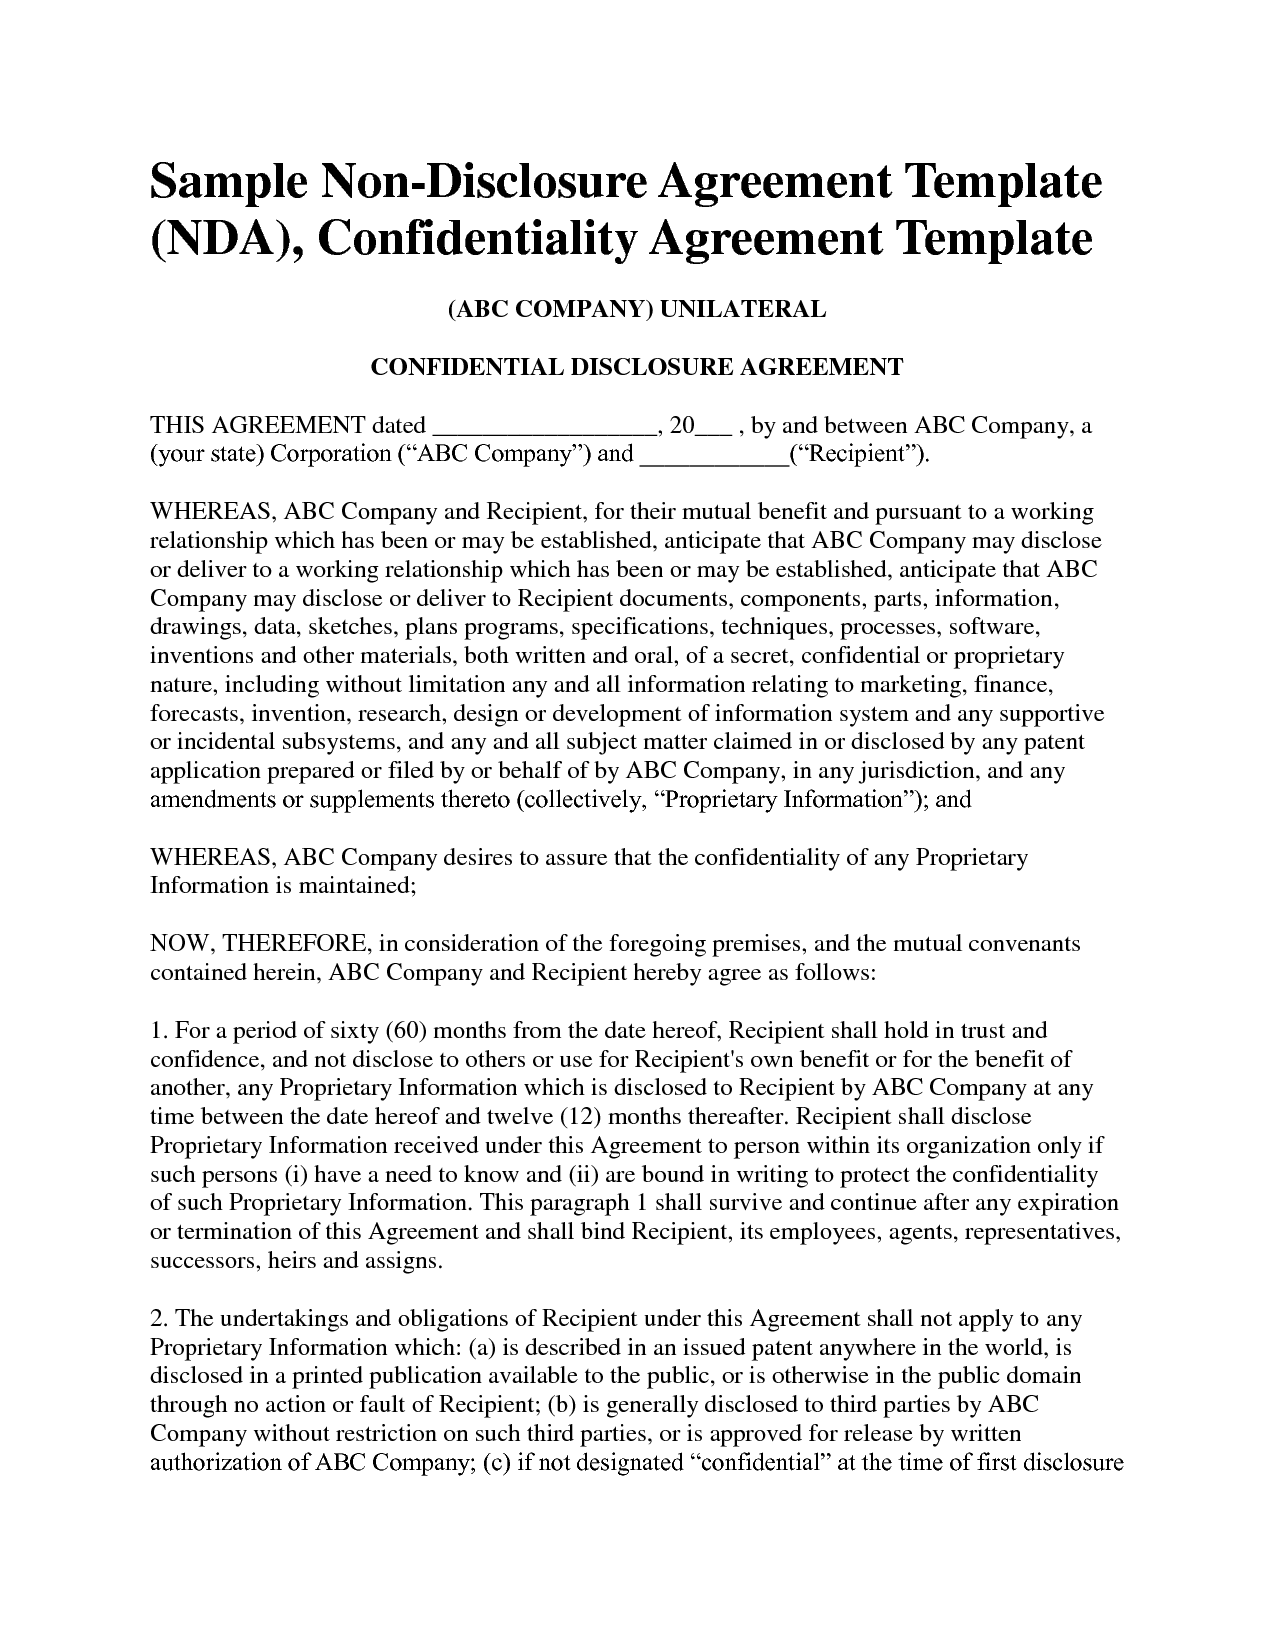 Non Disclosure Agreement Template Free Sample Nda Template Mvrsqrn - One page nda template